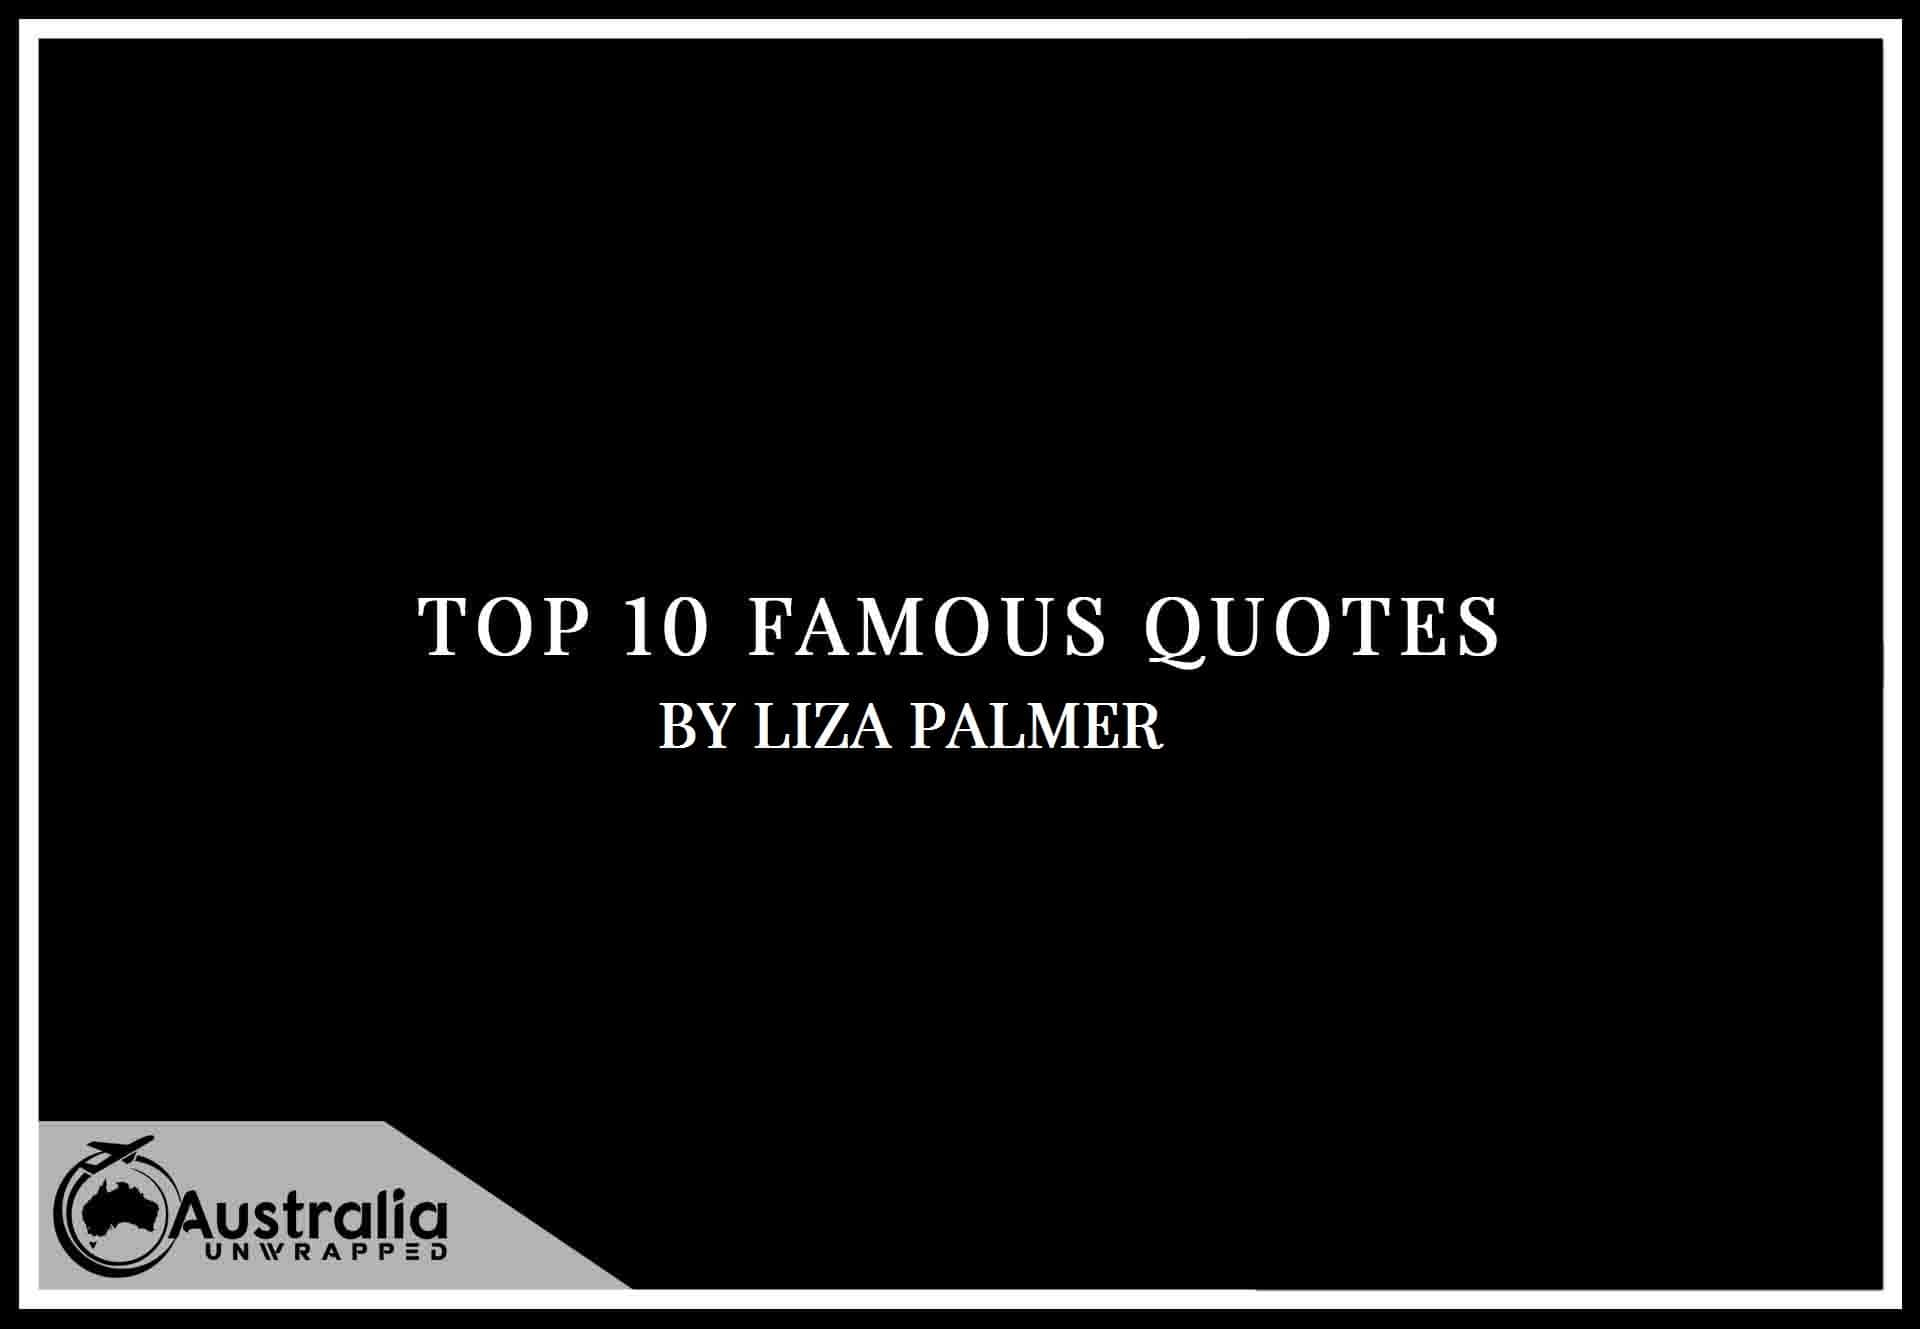 Liza Palmer's Top 10 Popular and Famous Quotes